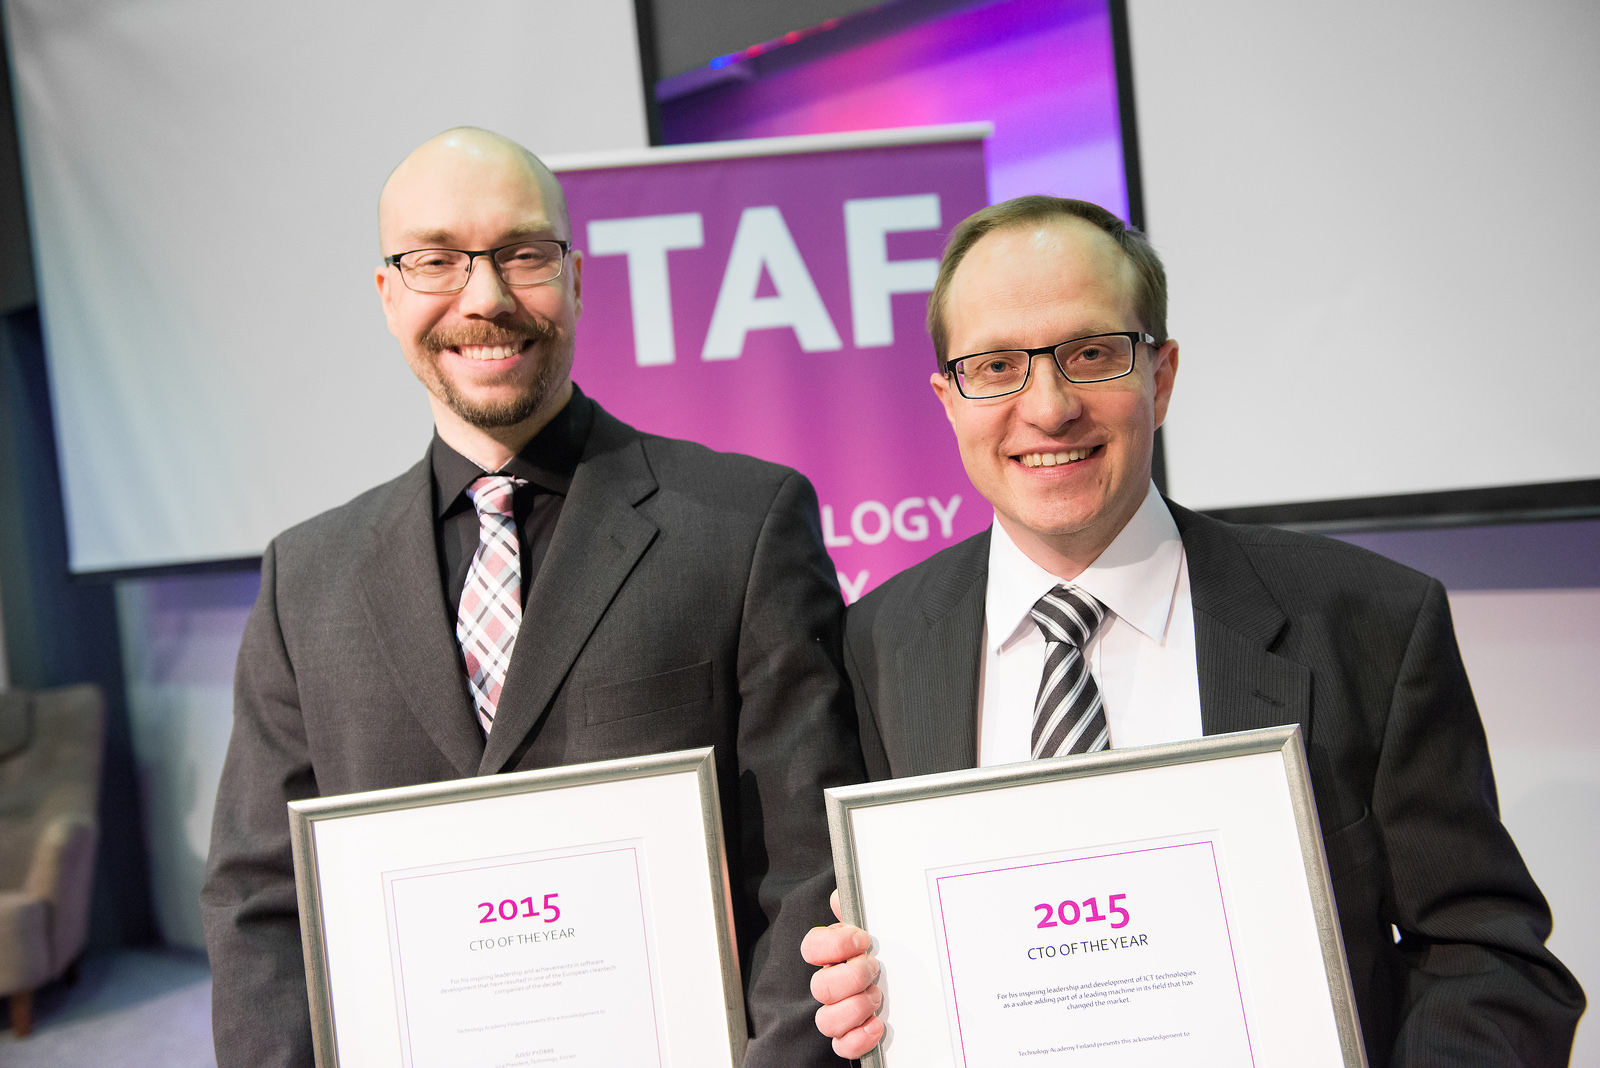 The CTO of the Year 2015 award was given to Jussi Pyörre, Eniram Oy, and Juha Inberg, Ponsse Plc.